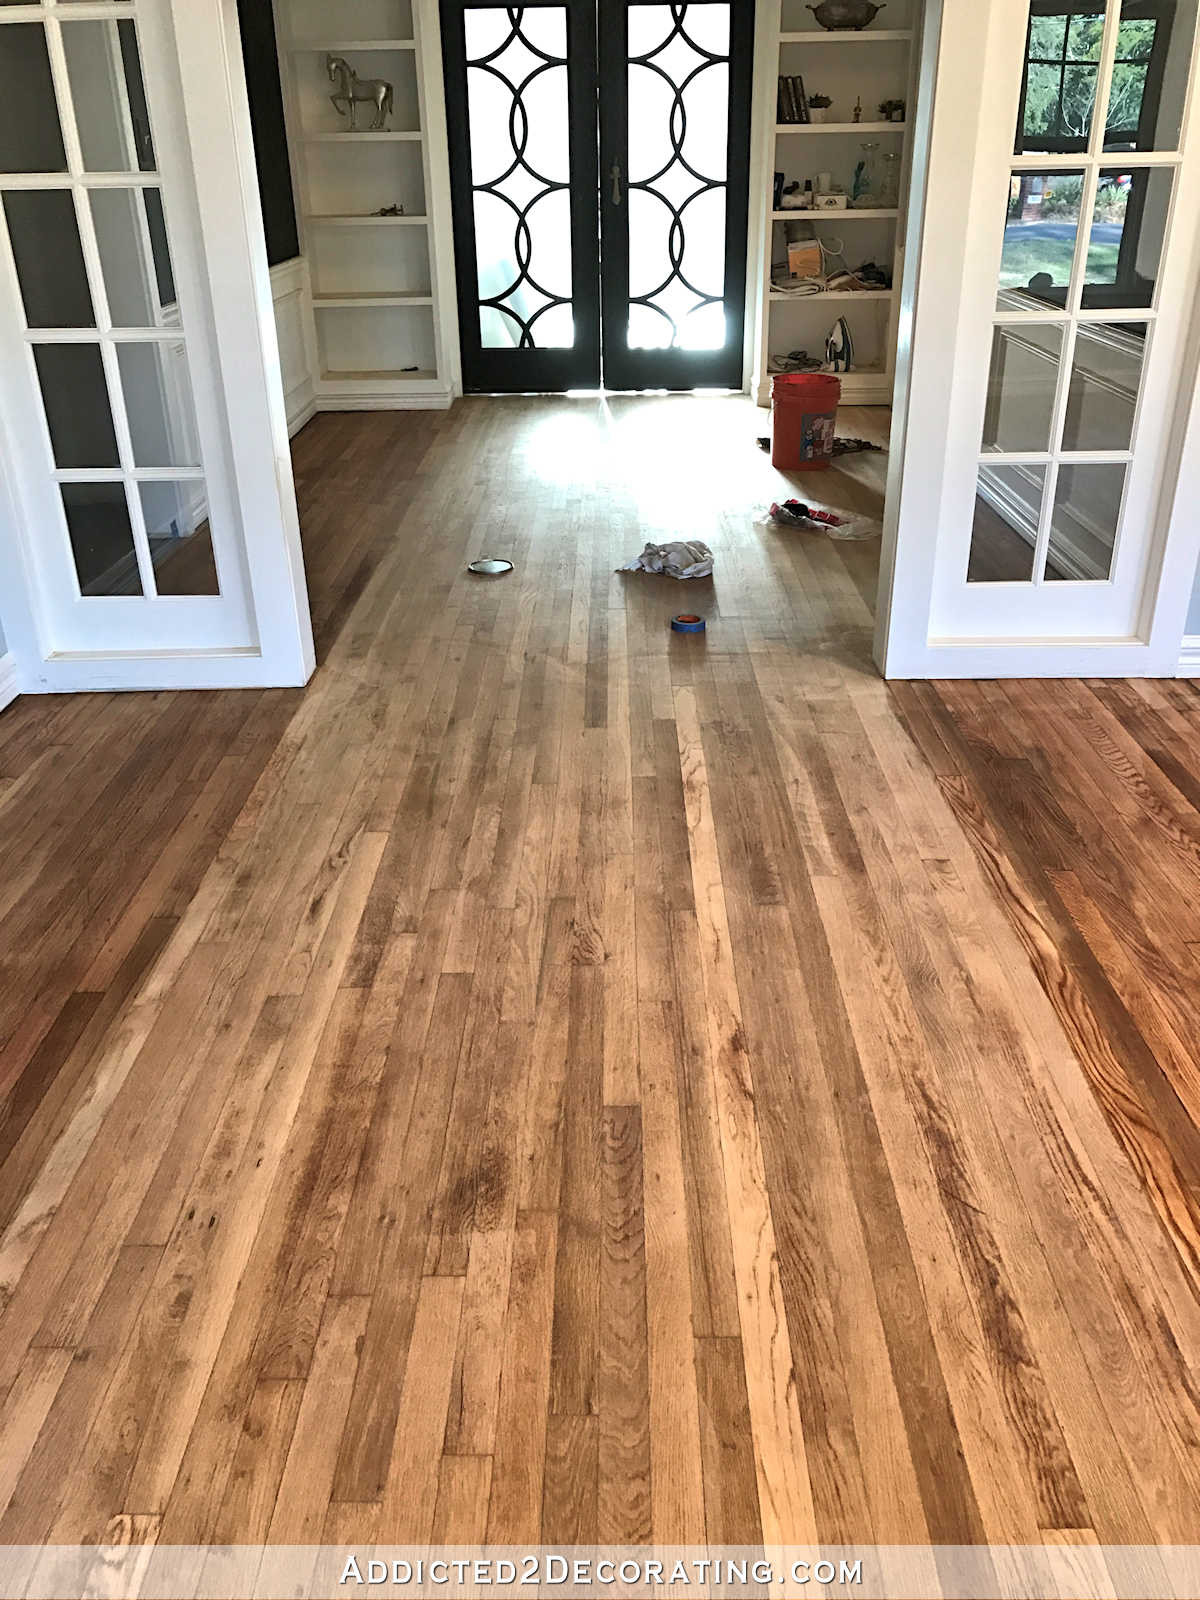 2 different hardwood floors of adventures in staining my red oak hardwood floors products process with regard to staining red oak hardwood floors 5 music room wood conditioner